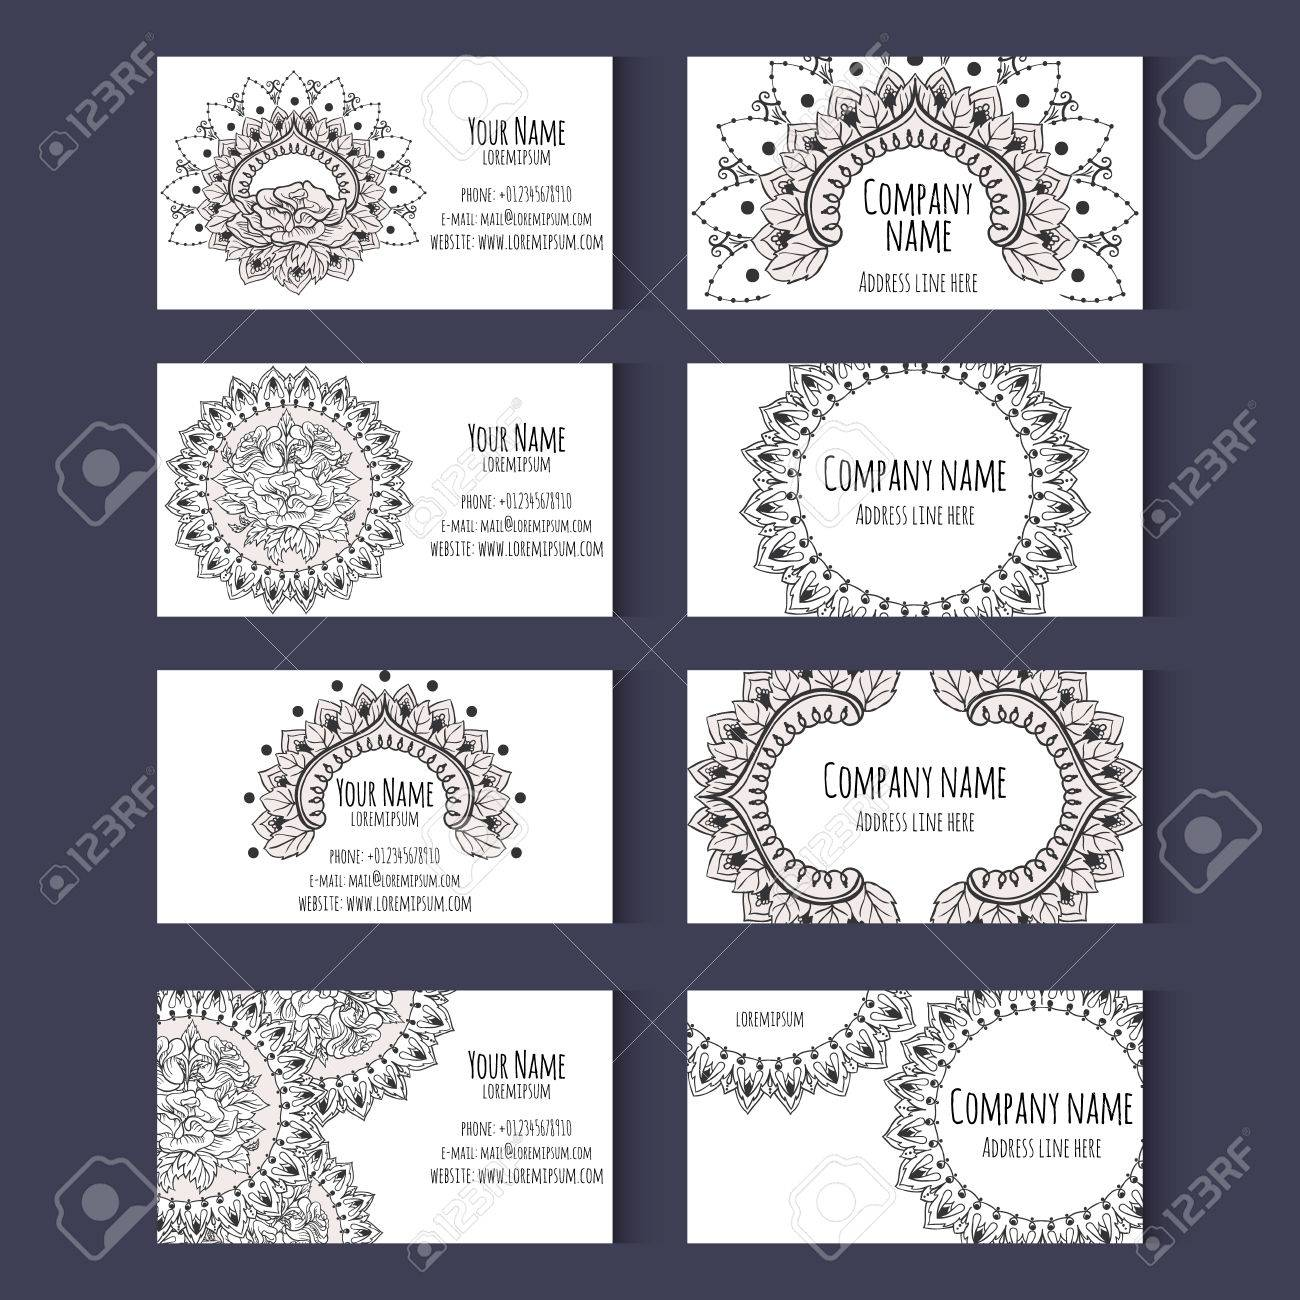 Set Of Templates For Business Cards Or Invitation Cards With ...